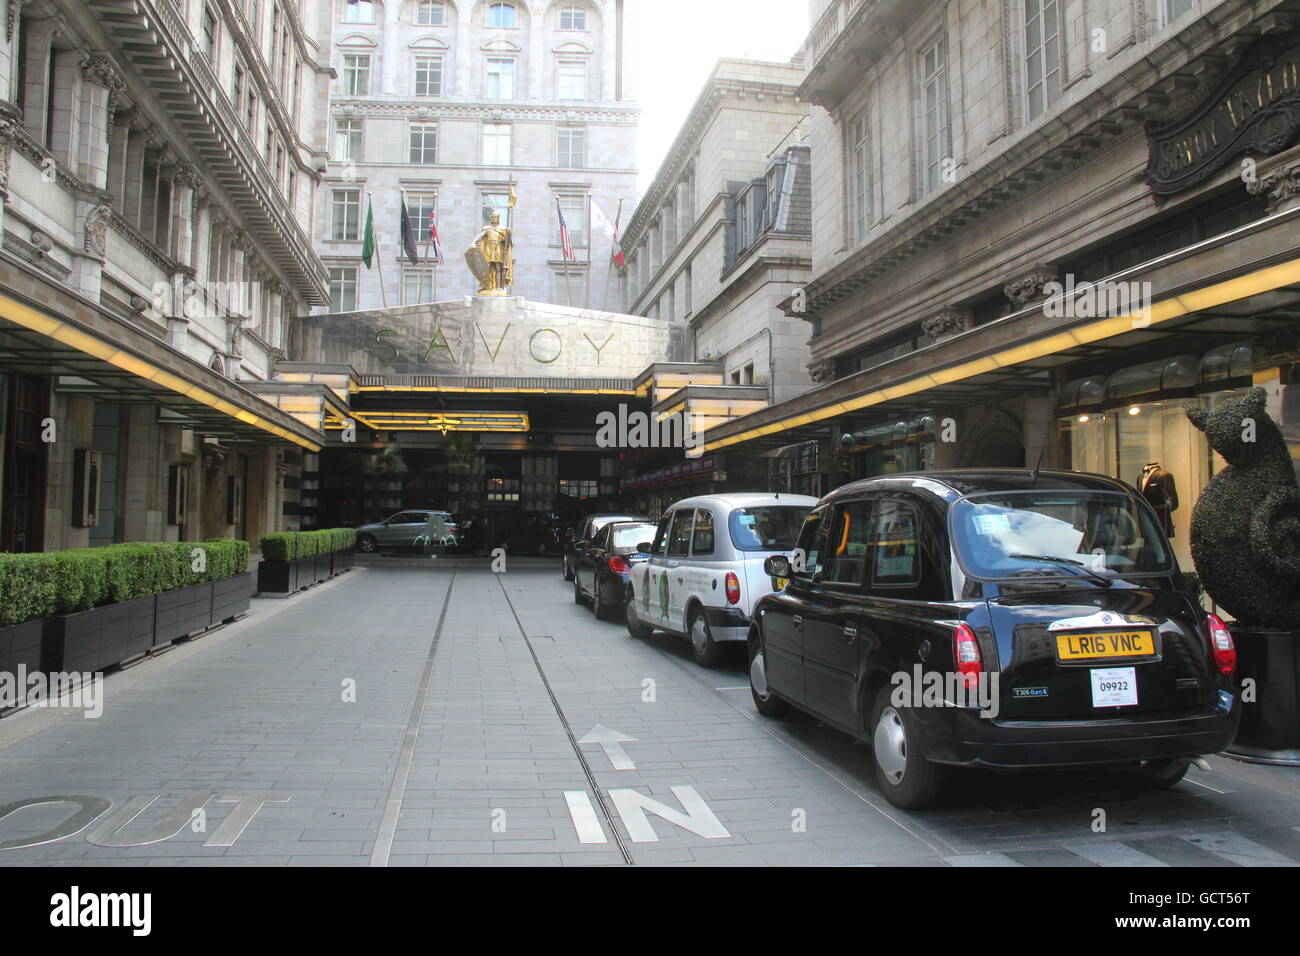 VIEW OF ENTRANCE TO SAVOY HOTEL IN LONDON WITH LONDON TAXI CABS OUTSIDE - Stock Image